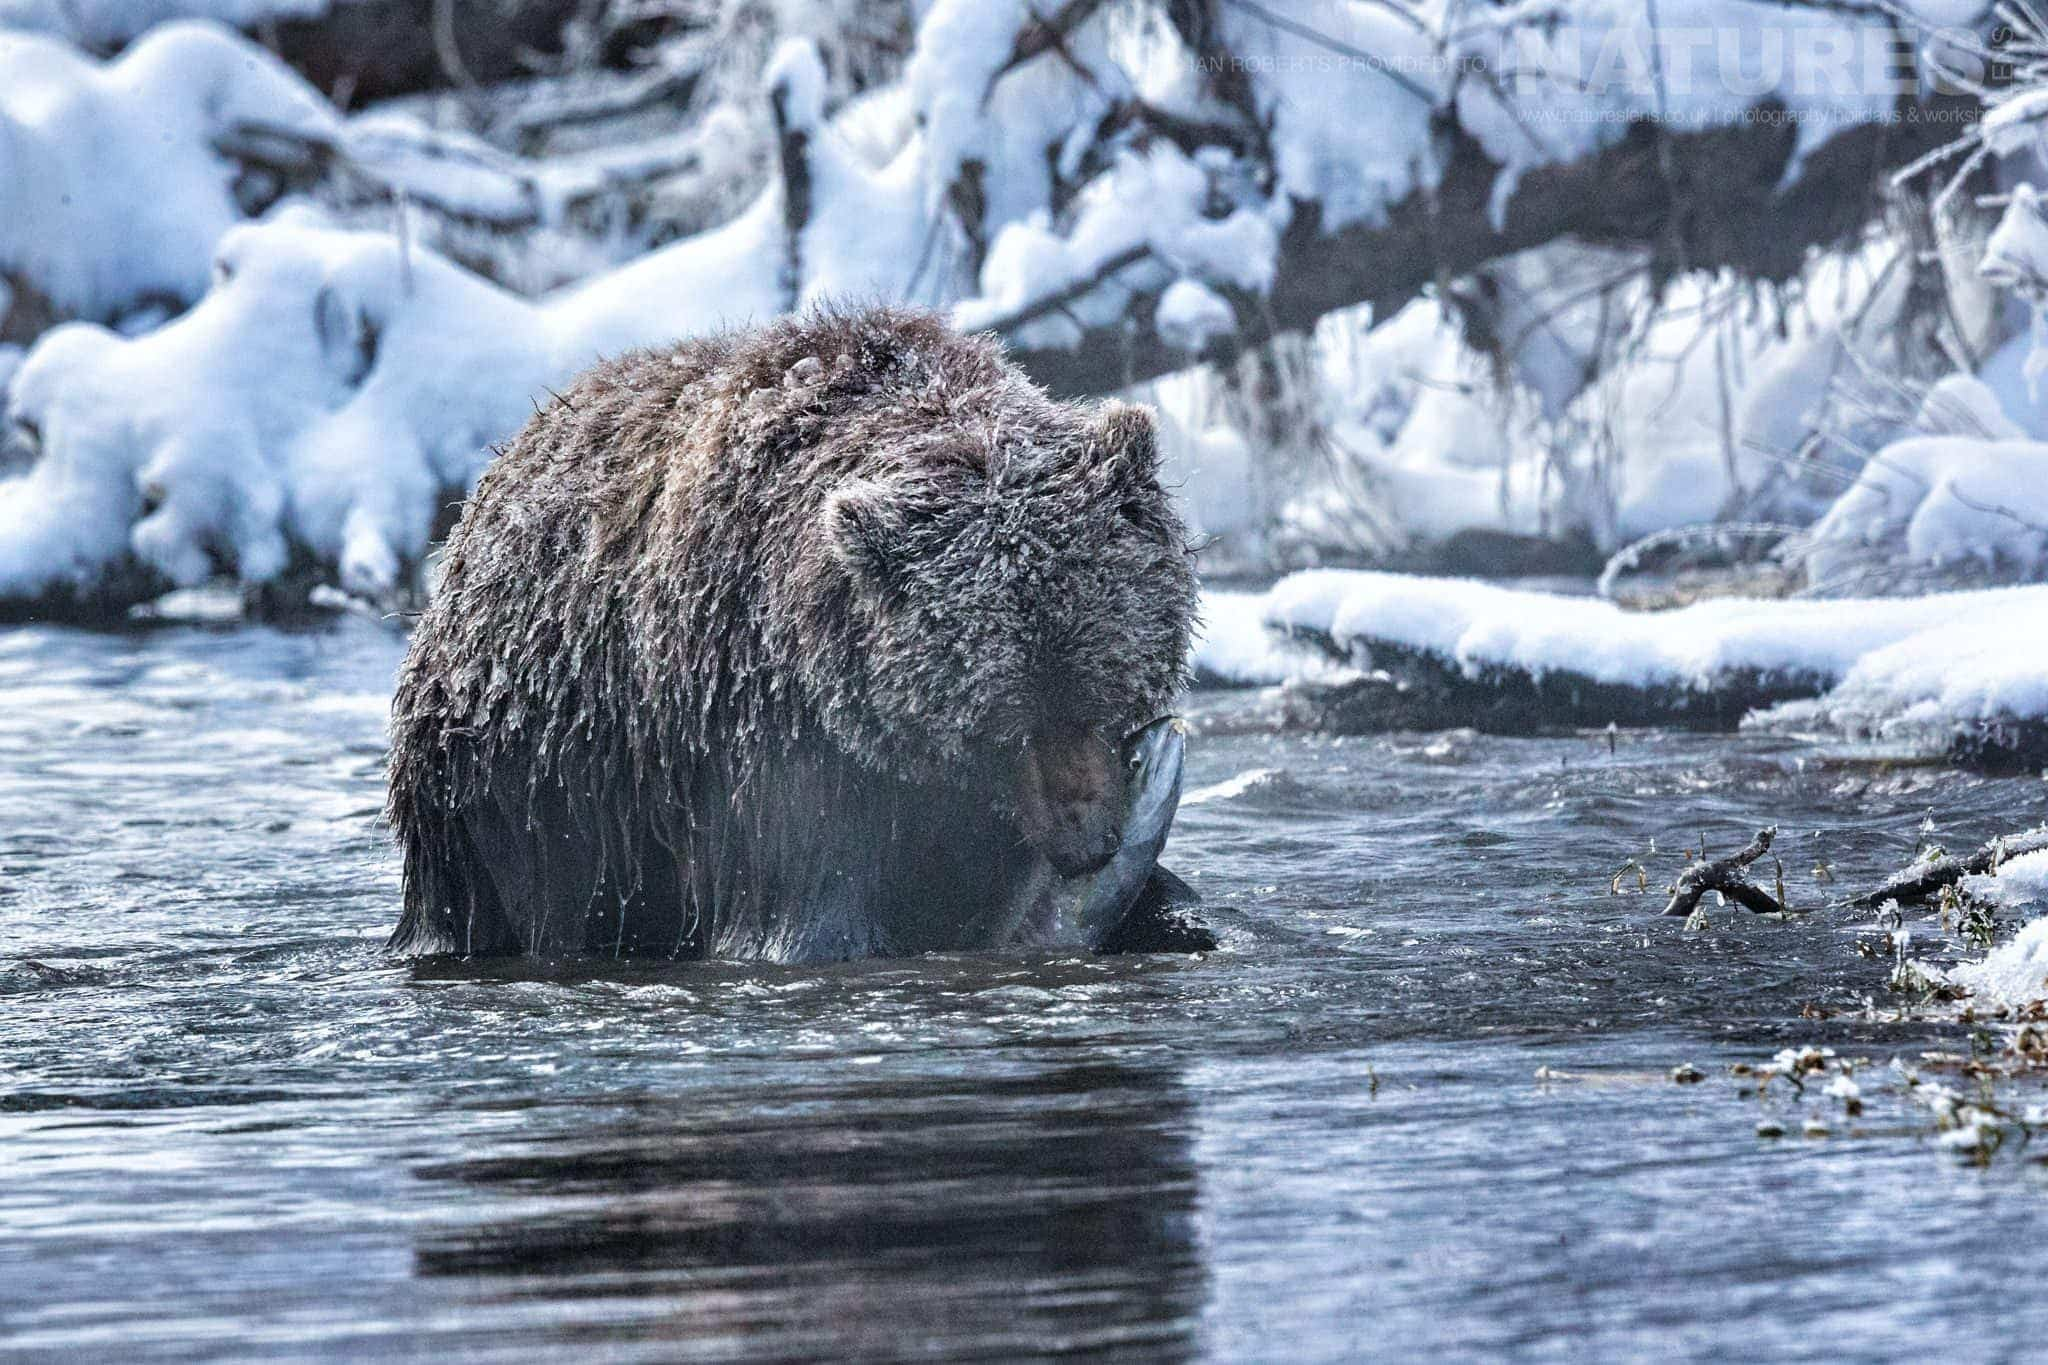 A Grizzly Bear Pulls Salmon Out Of The Stream   Captured During The Natureslens Ice Grizzlies Of The Yukon Photography Holiday